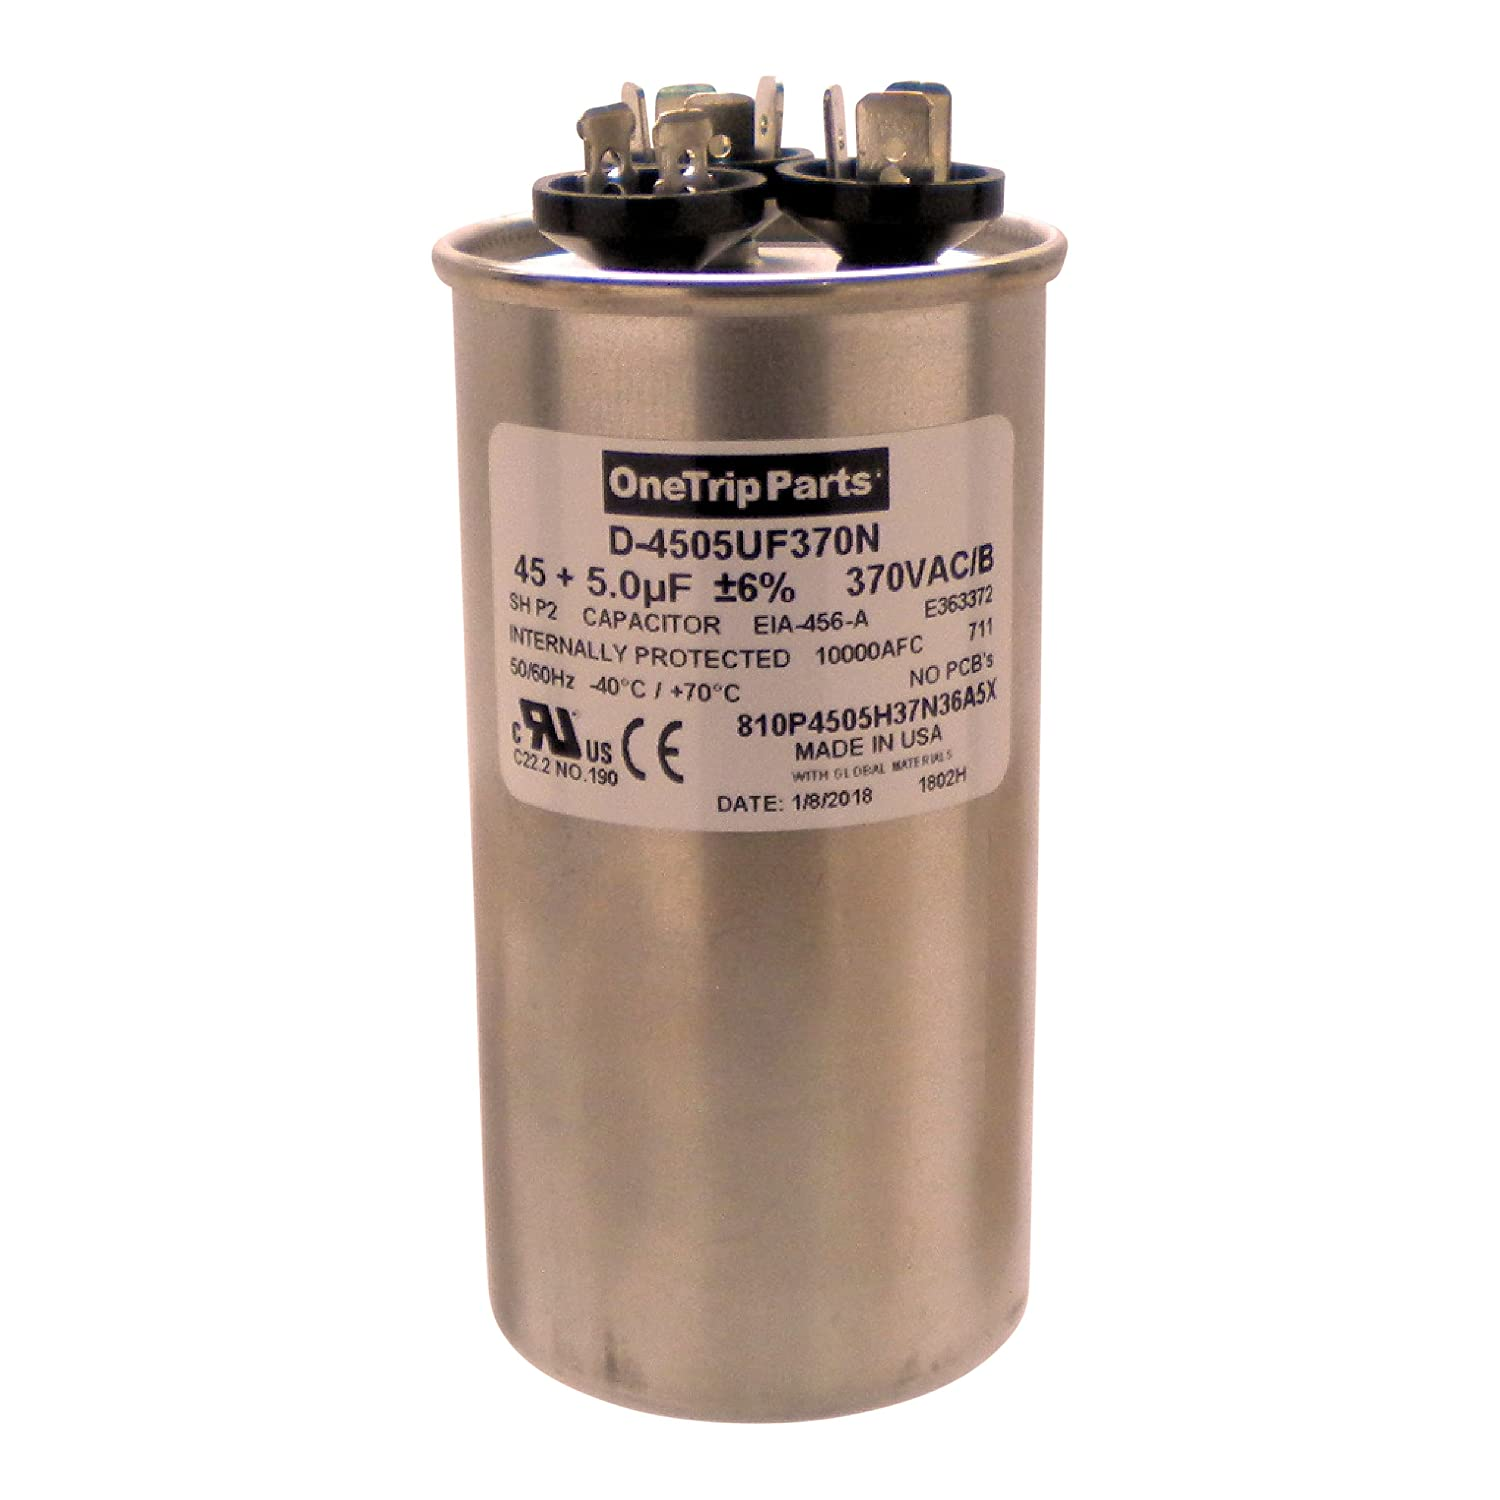 Buy Capacitor 45 5 Mfd 370 Vac Round Onetrip Parts Replacement For Payne Hvac Wiring Diagram Carrier Bryant Day Night P291 4553 Online At Low Prices In India